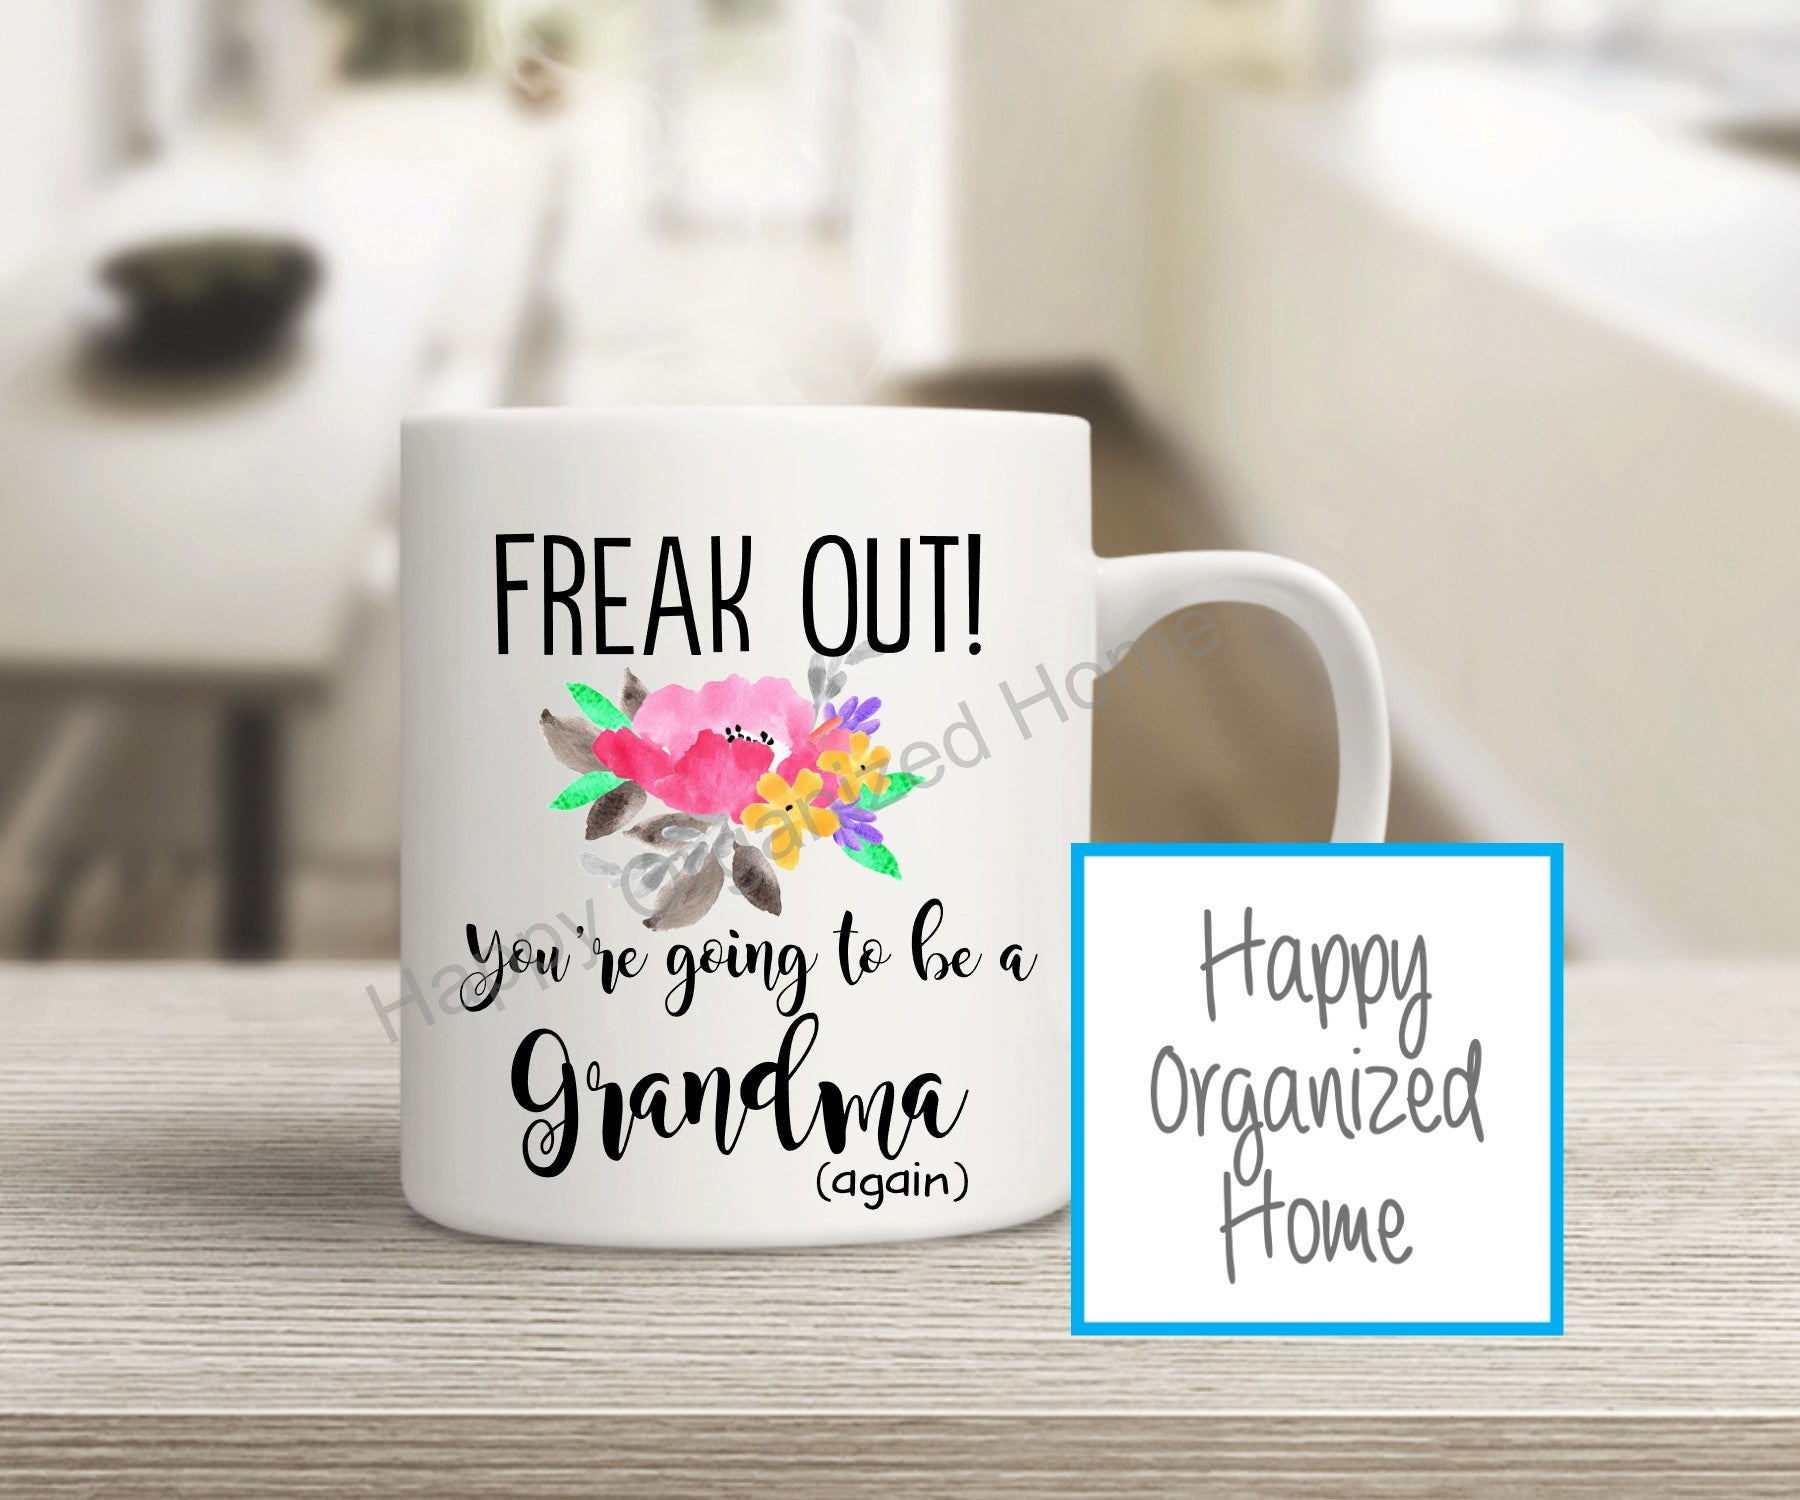 Freak Out! You're going to be a Grandma Again!